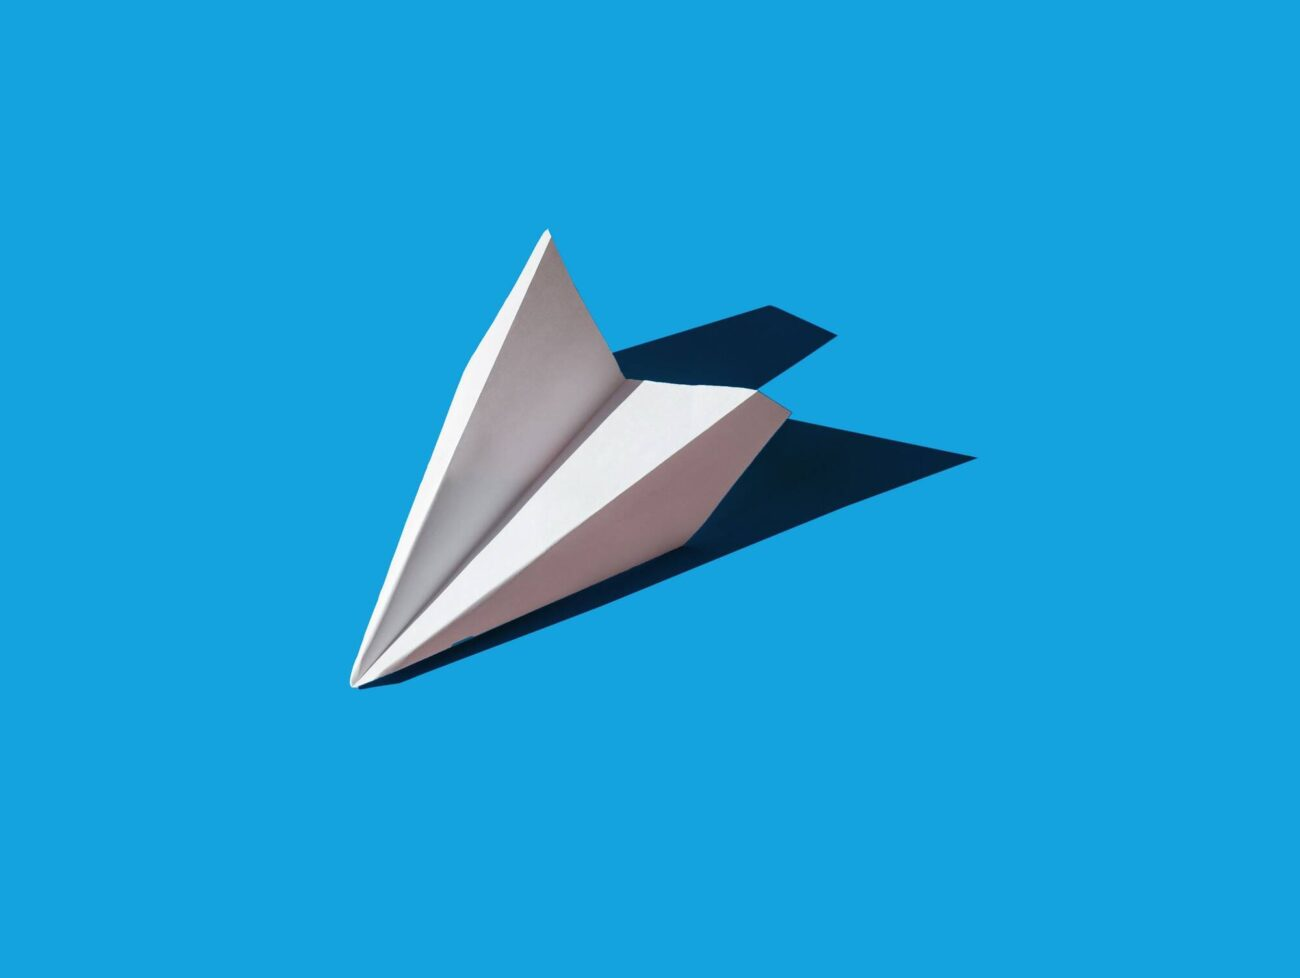 Using Telegram is awesome! Have you used the messenger for crypto signals? Check out these crypto trading perks.